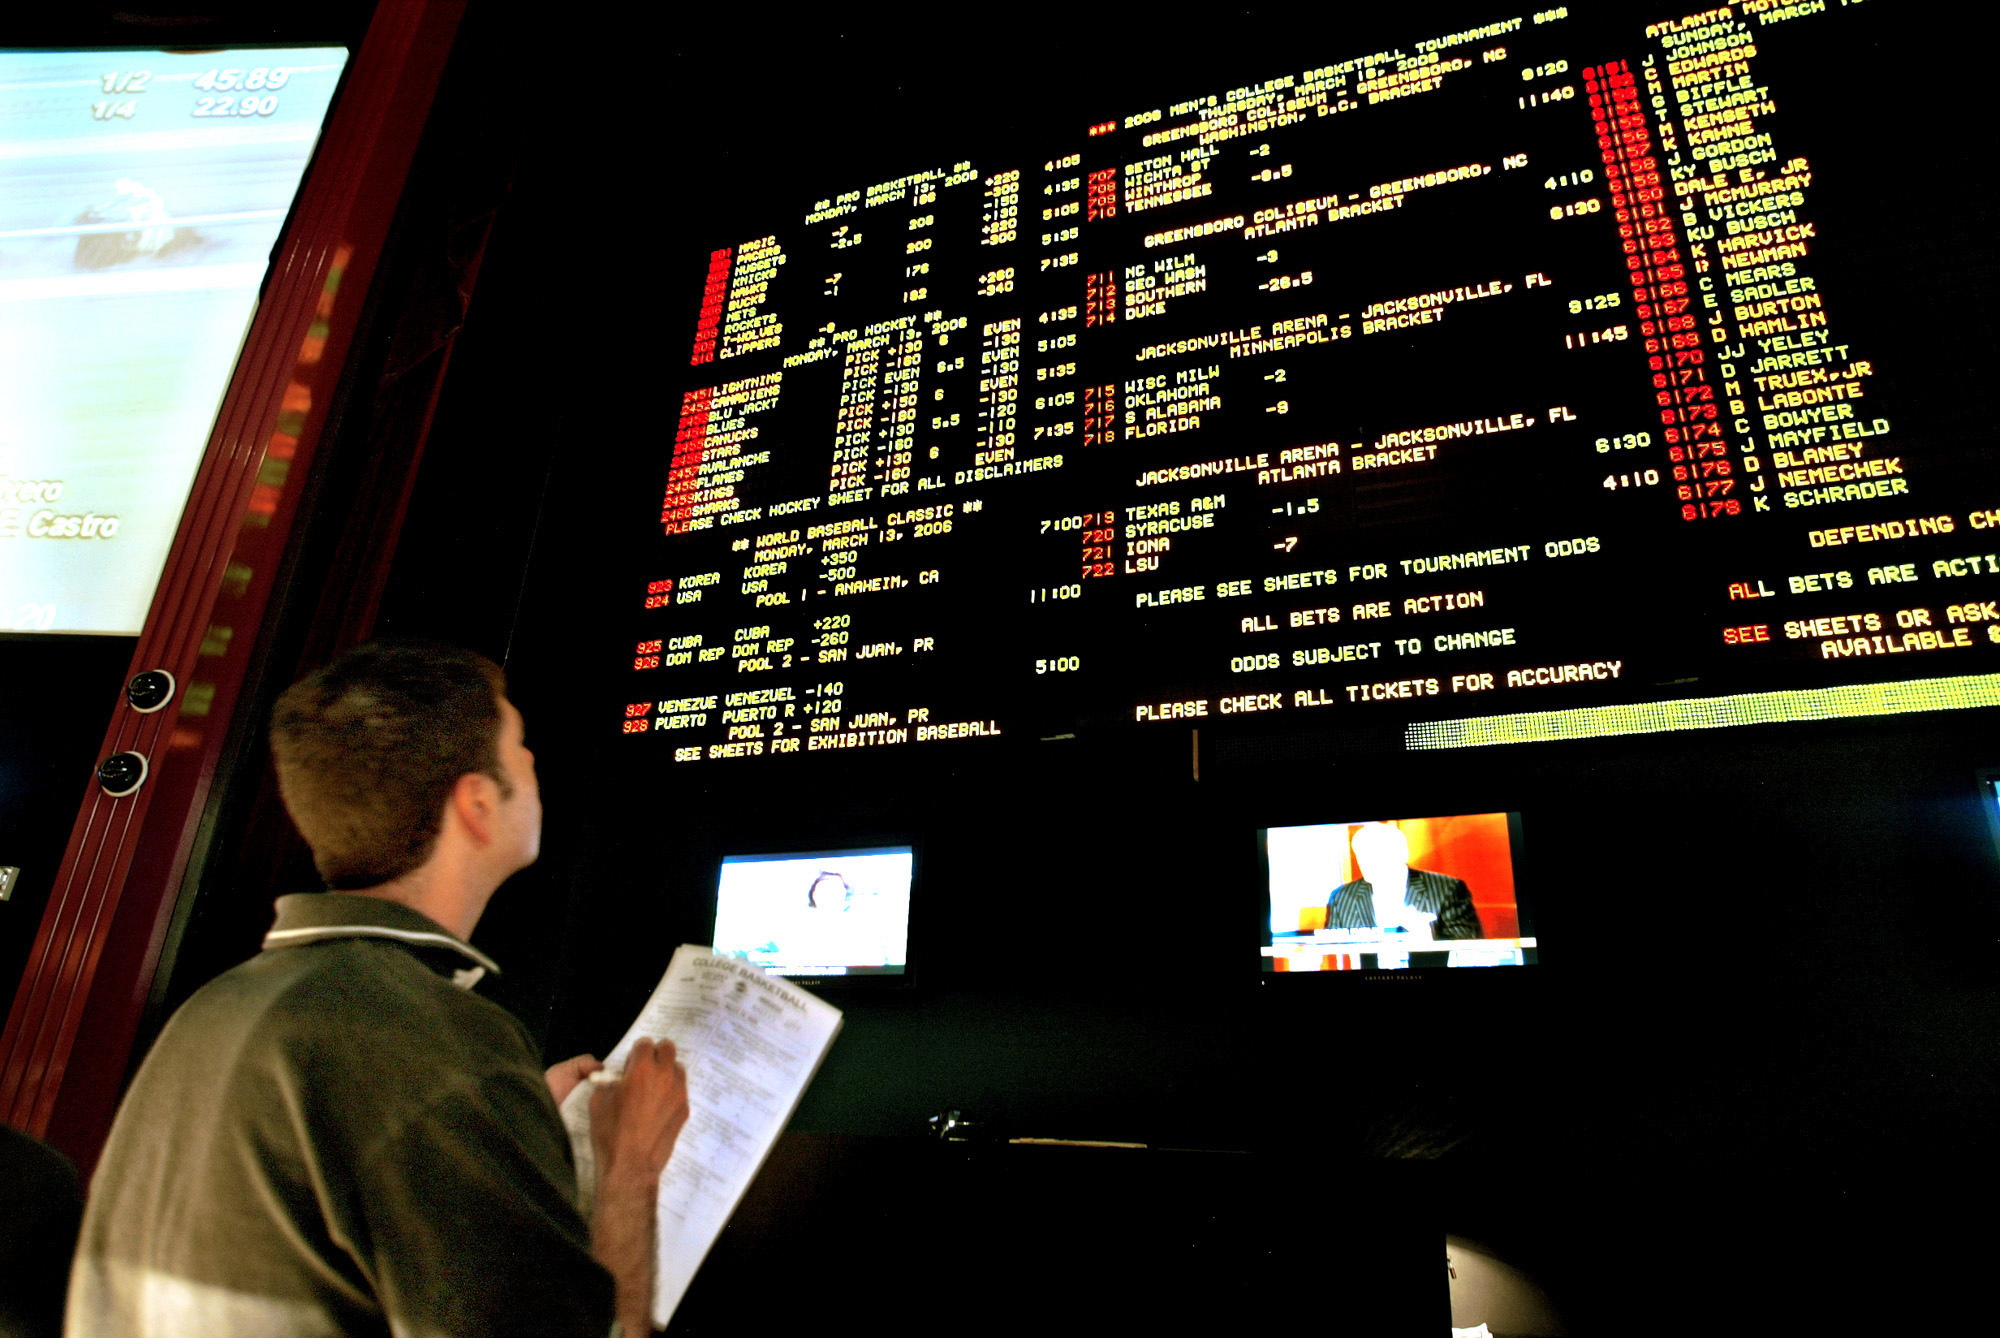 Casino ondemandfunds payment prefer tracking players in casinos